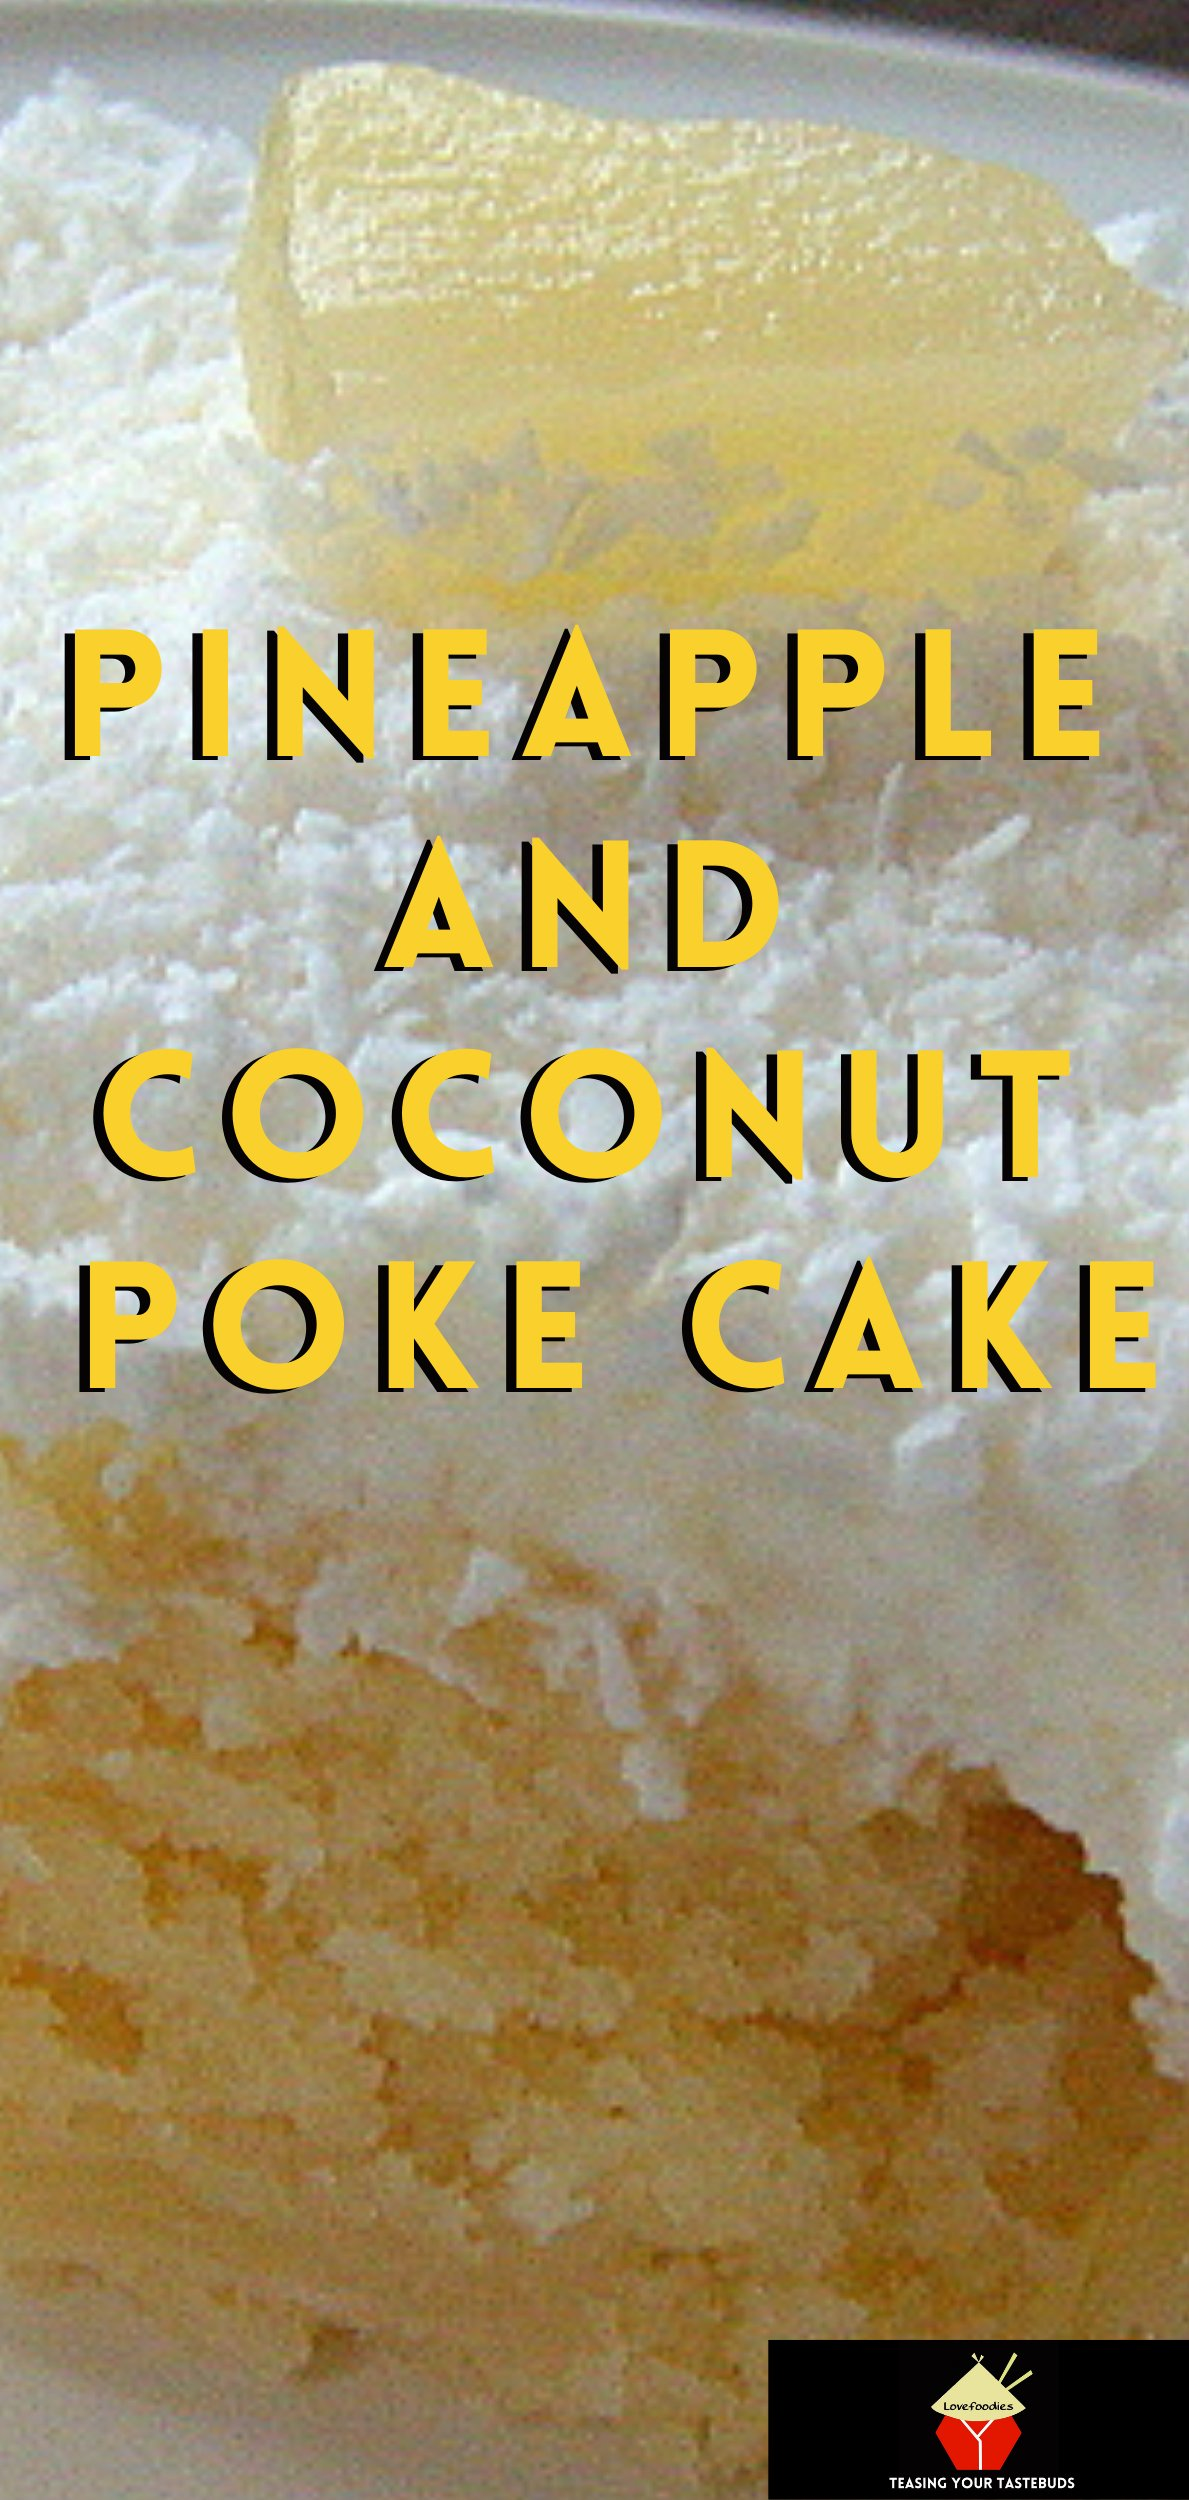 Pineapple and Coconut Poke Cake. A delicious pineapple combined with creamy coconut cake recipe, topped with fresh whipped cream and more coconut, making a soft and fluffy great tasting tropical cake